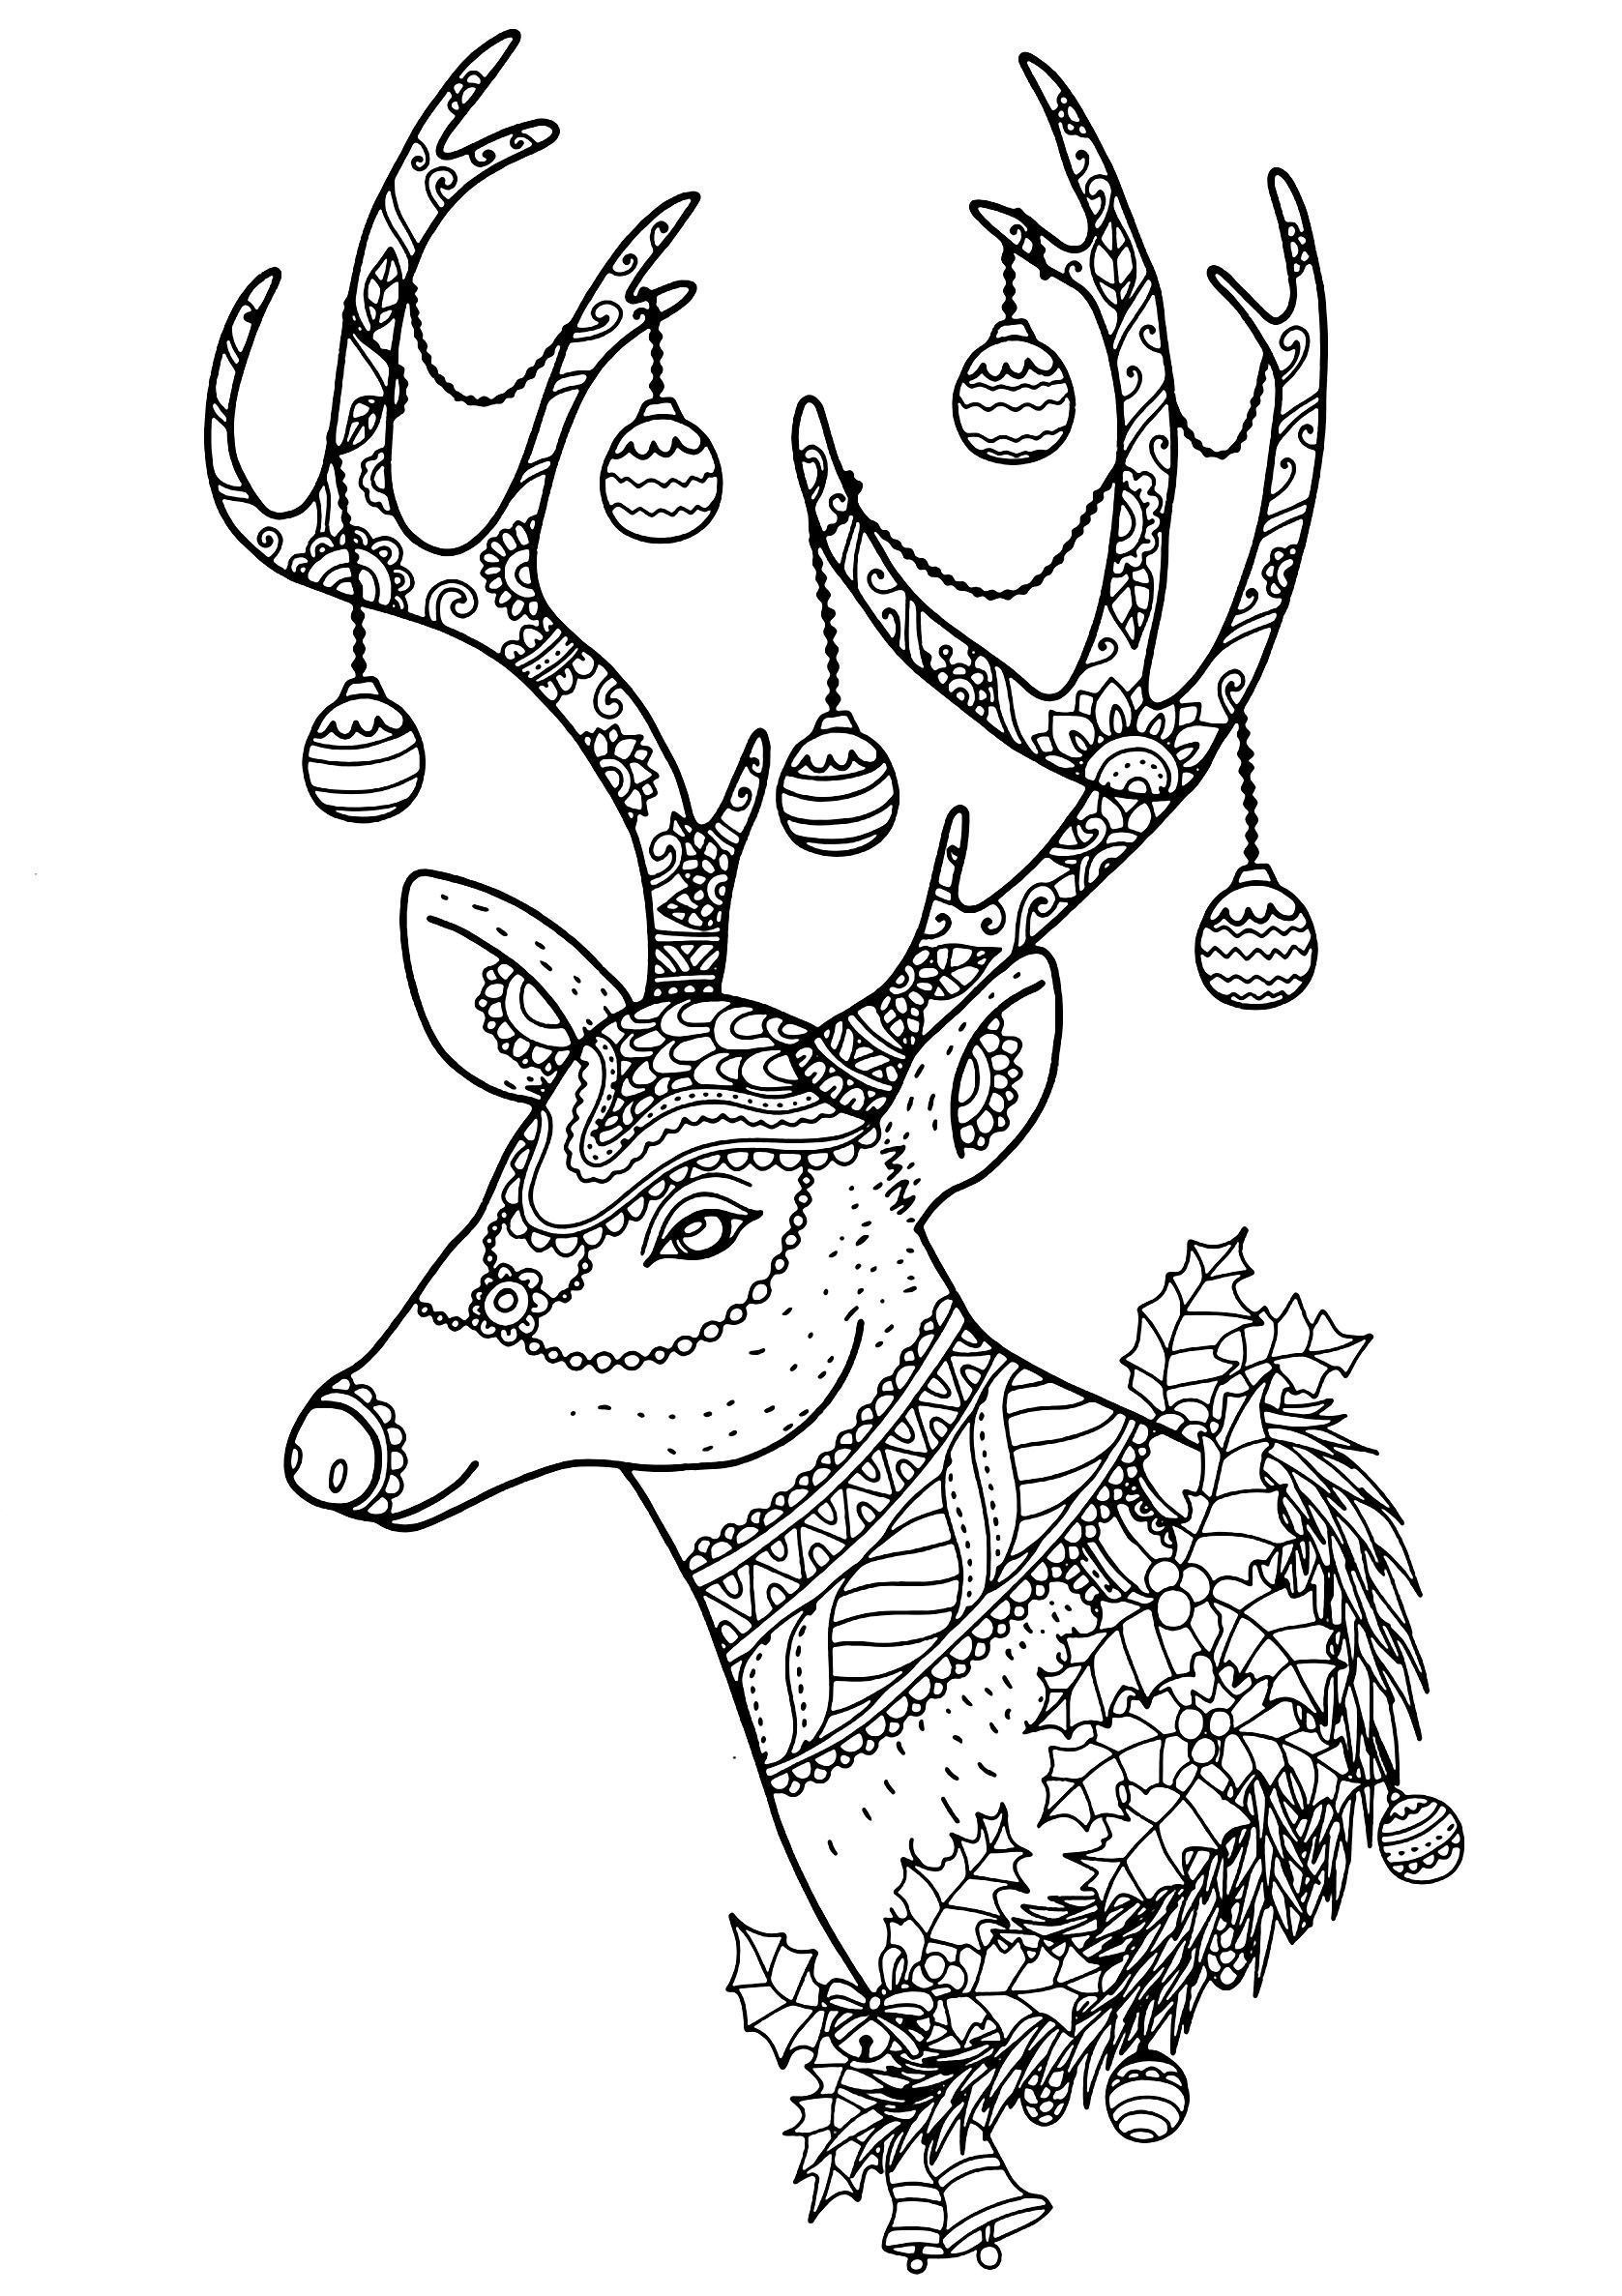 Reindeer Coloring Pages Deer Coloring Pages Coloring Pages